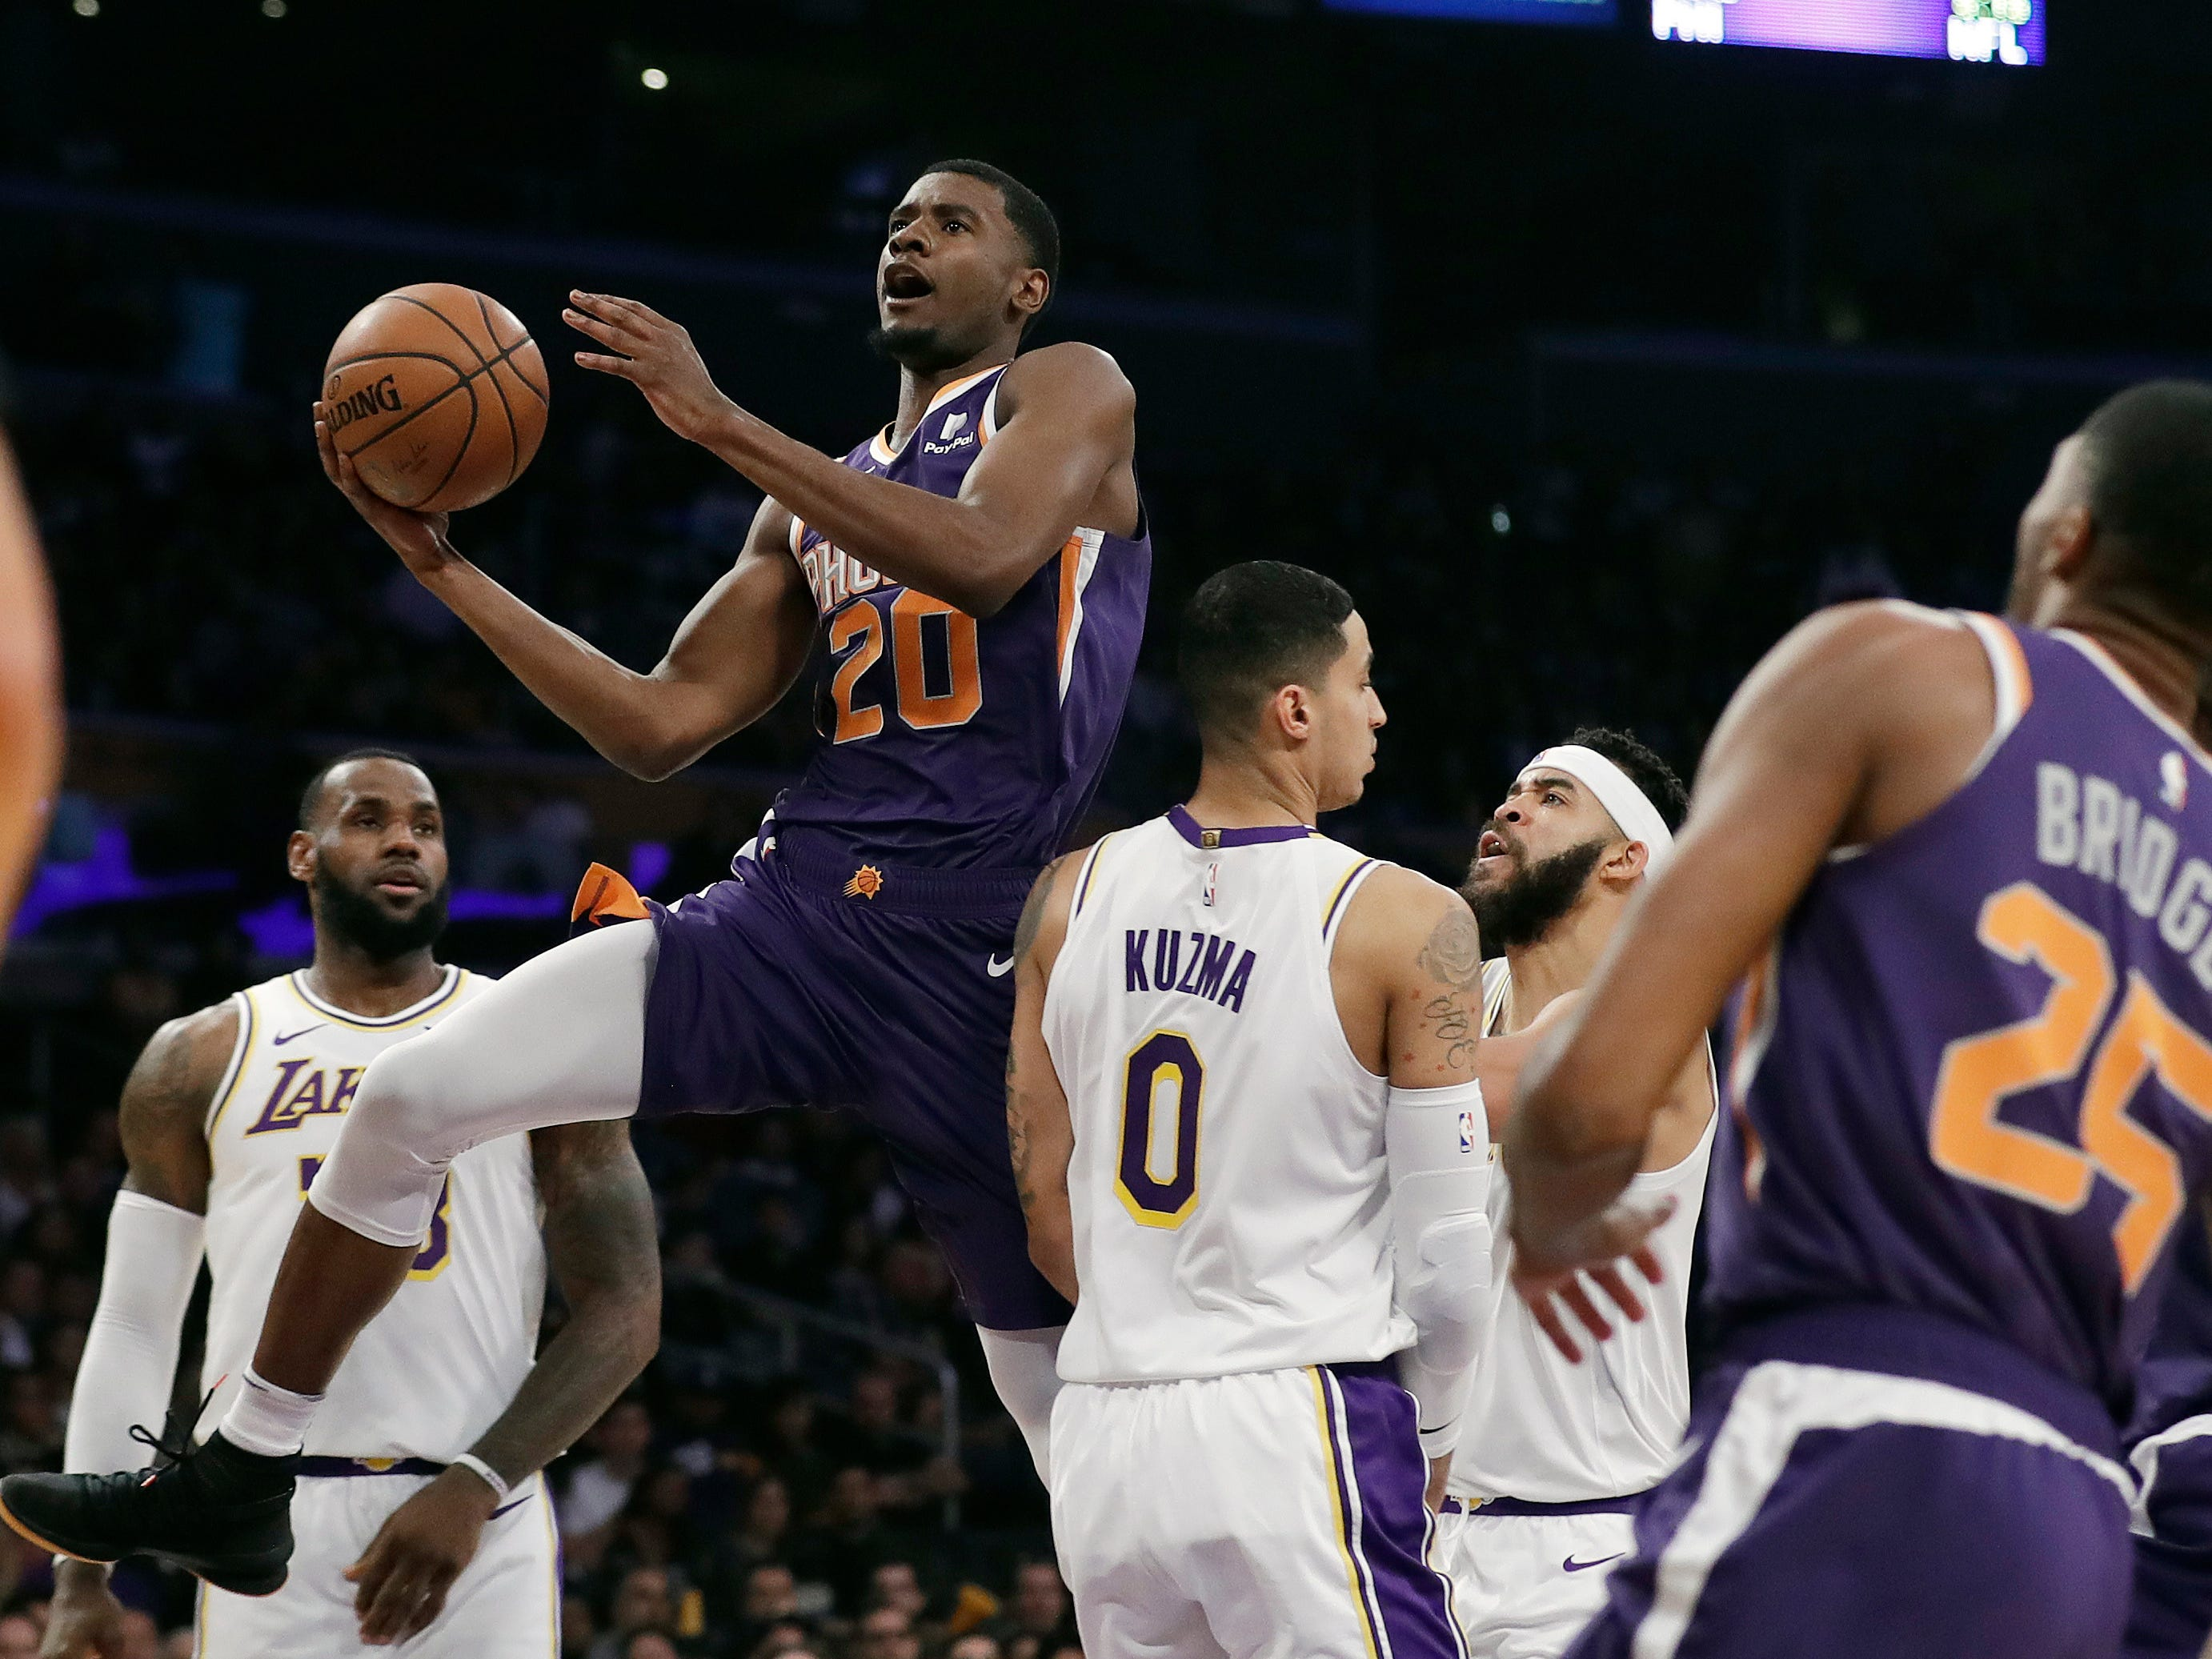 Phoenix Suns' Josh Jackson (20) shoots past Los Angeles Lakers' Kyle Kuzma (0) during the first half of an NBA basketball game Sunday, Dec. 2, 2018, in Los Angeles. (AP Photo/Marcio Jose Sanchez)